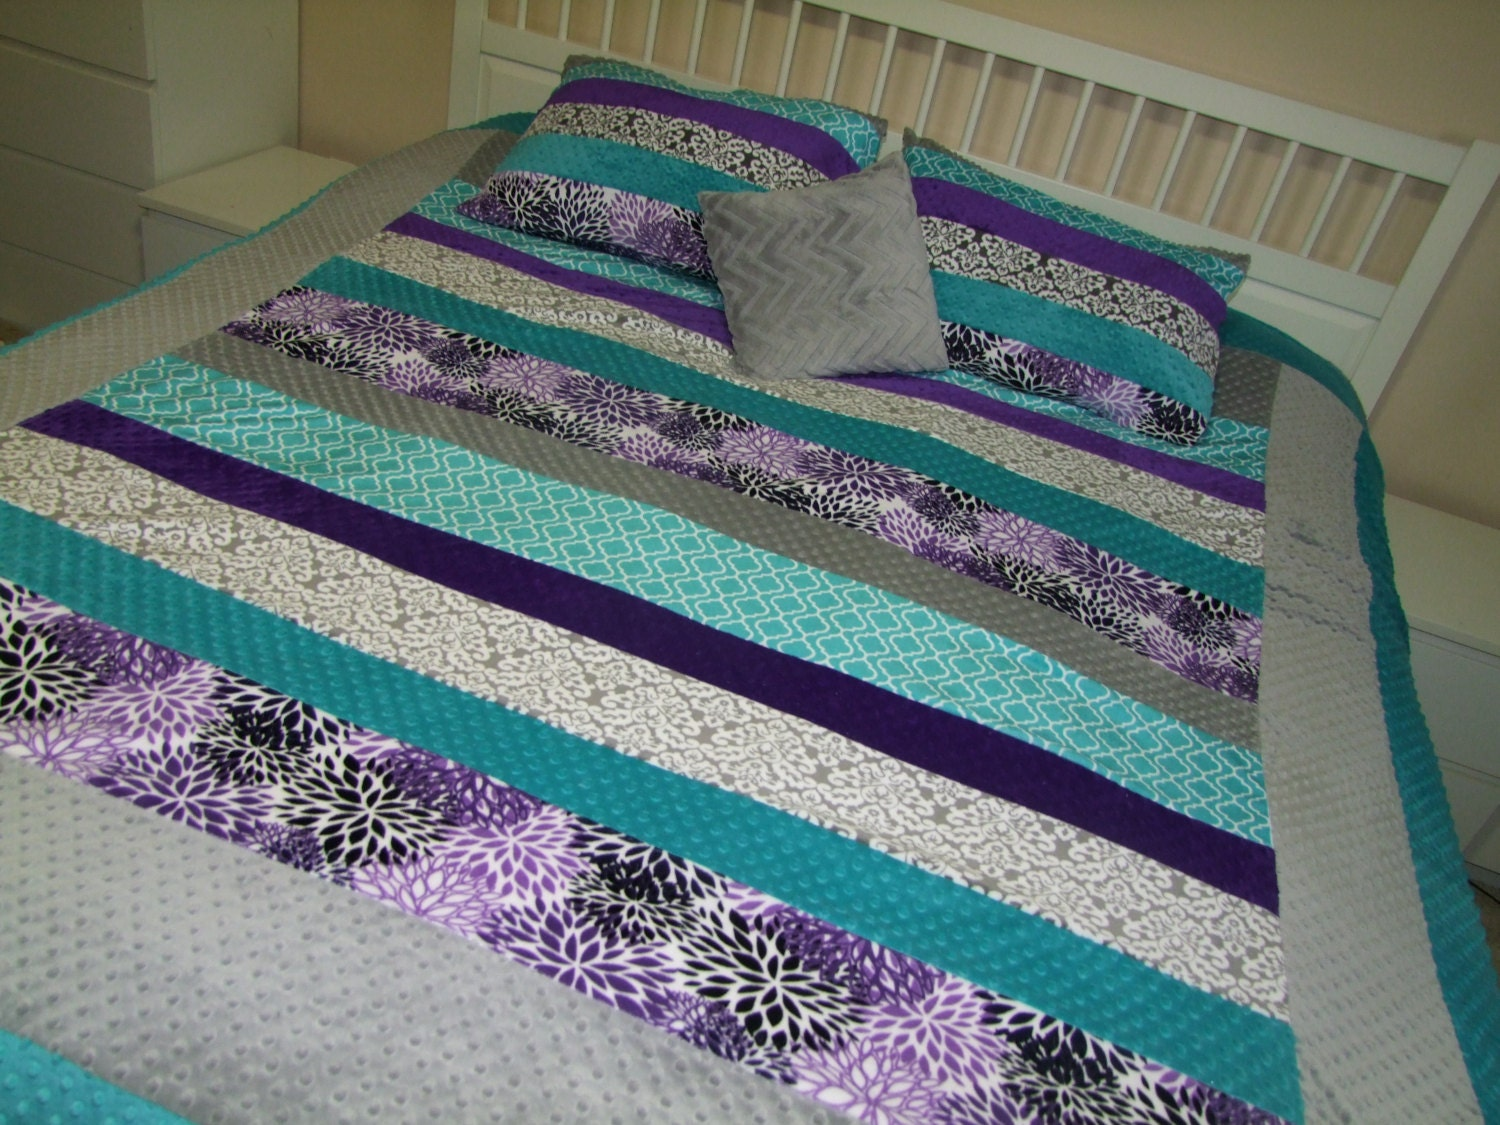 purple teal twin bedding purple double size blanket aqua. Black Bedroom Furniture Sets. Home Design Ideas